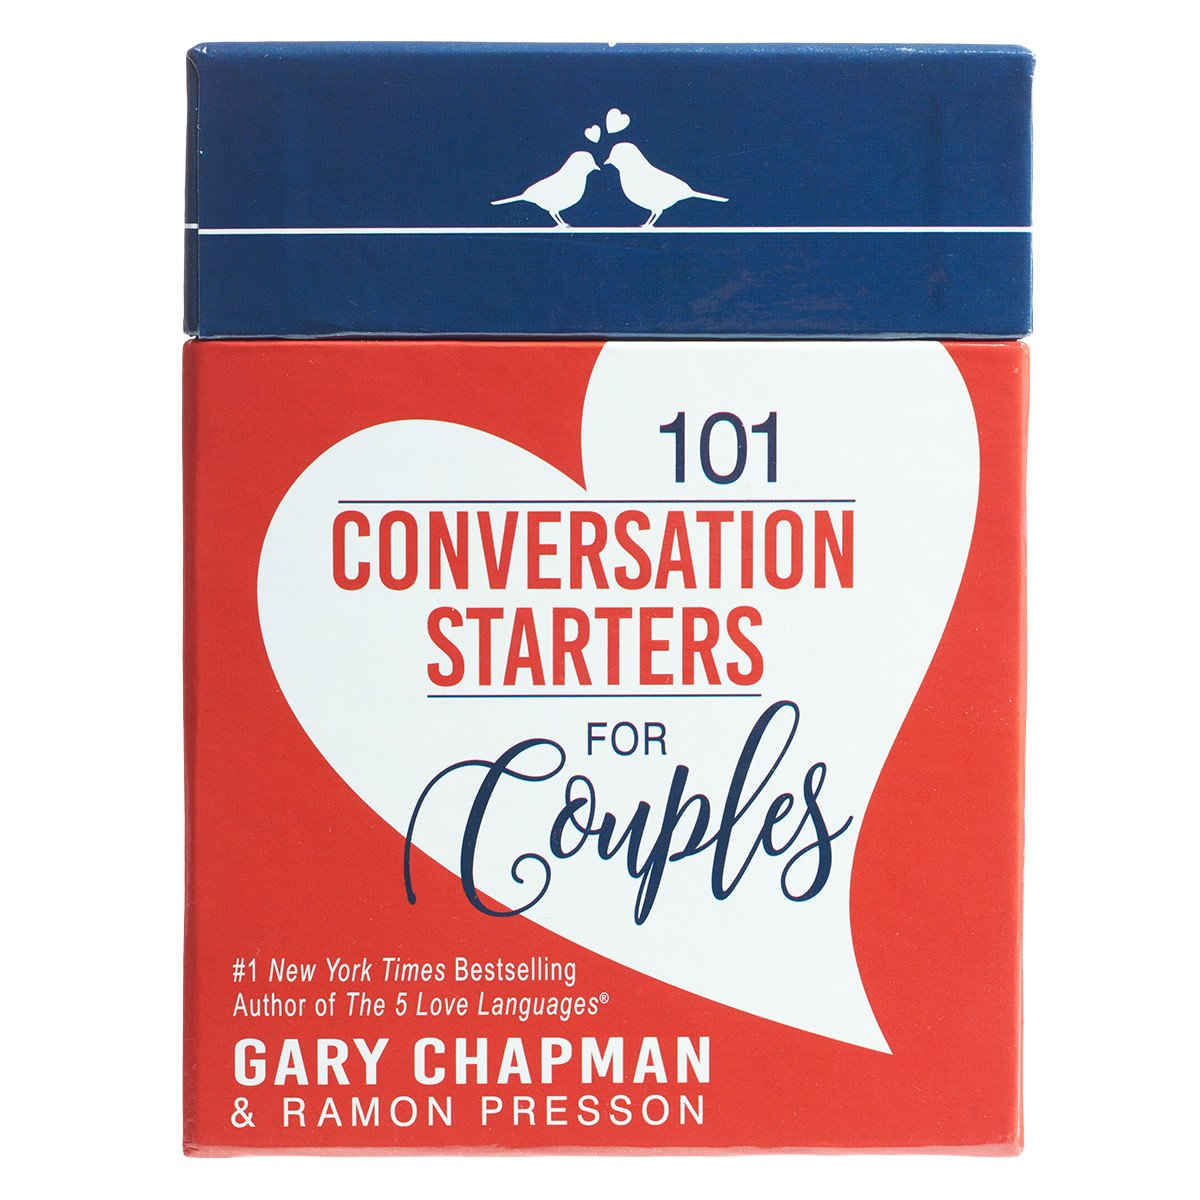 Gary Chapman Box Of 101 Conversation Starters for Couples: Gary Chapman:  9781432124199: Amazon.com: Books